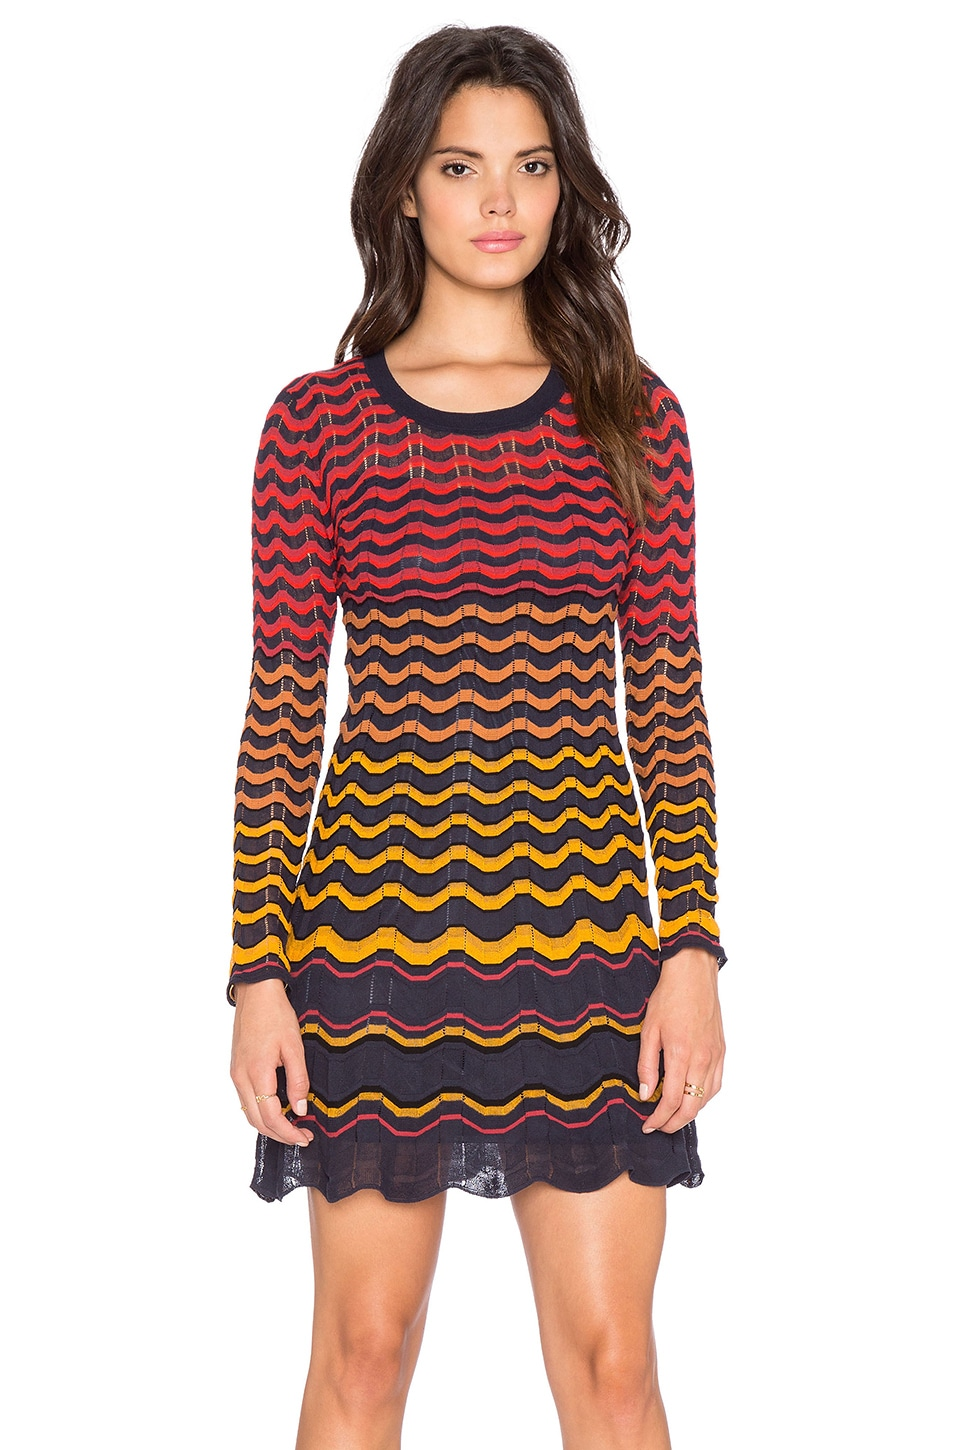 M Missoni Multi Zig Zag Long Sleeve Dress in Navy